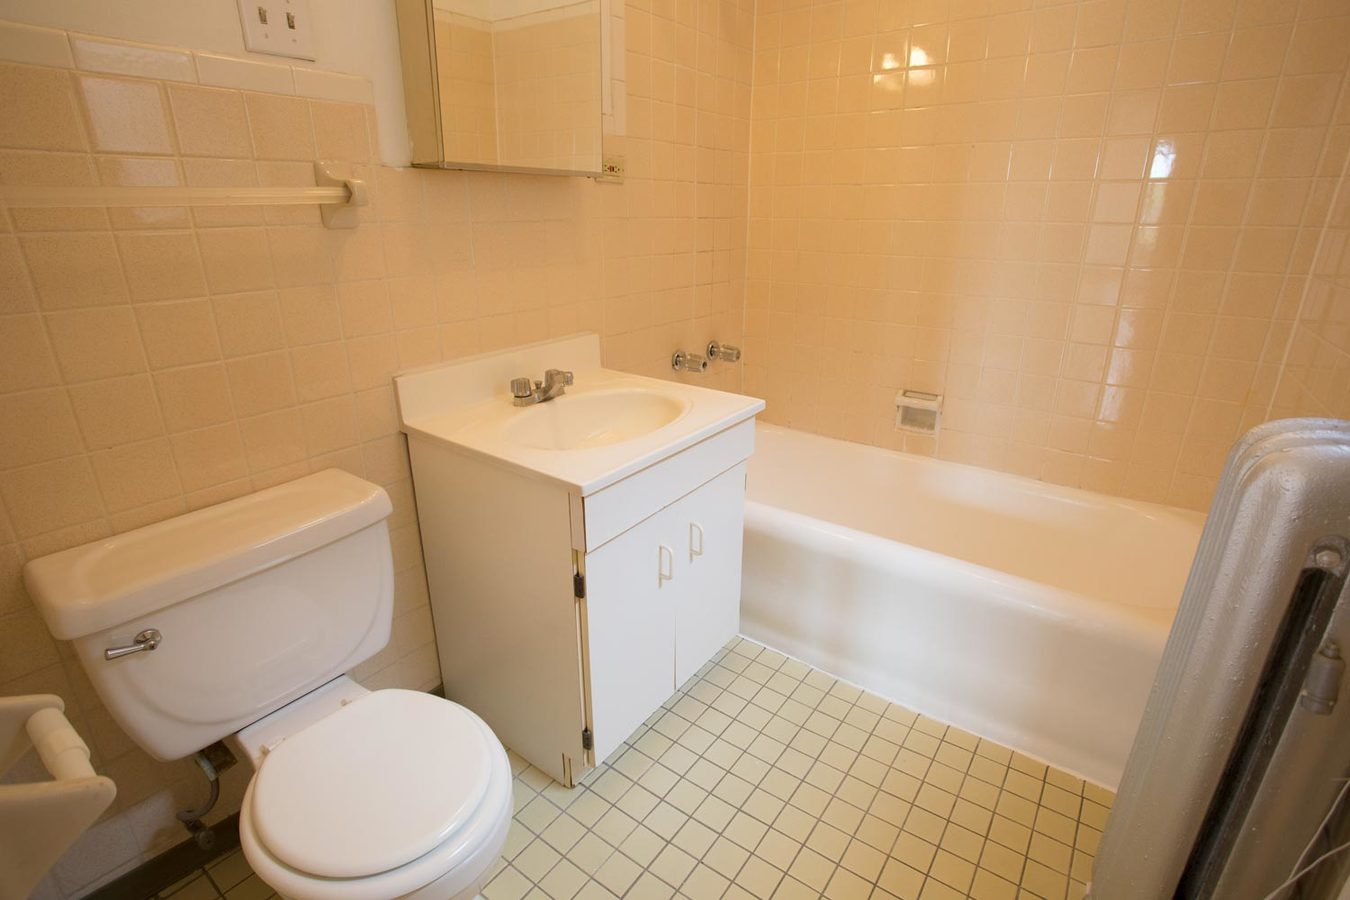 3 Bedrooms 1 Bathroom Apartment for rent at 5053 S. Ellis Avenue in Chicago, IL